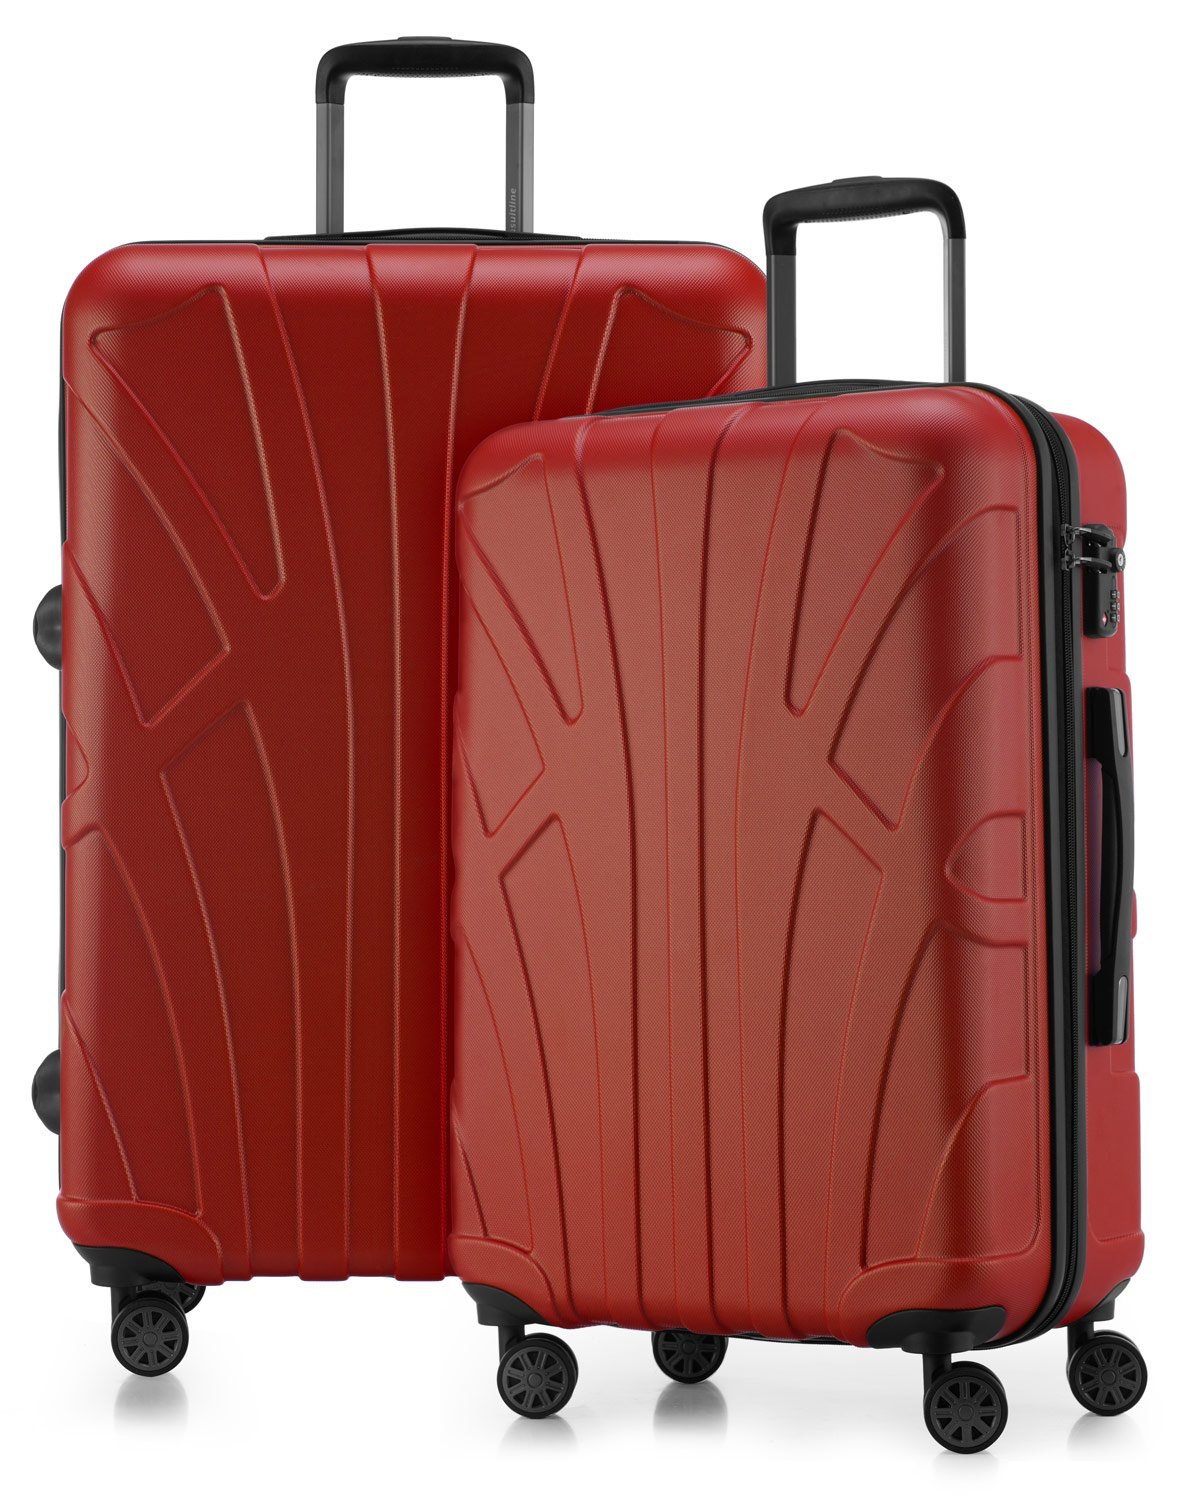 Suitline - Set di 2 Trolley rigido, Due valigie di medie dimensioni 66 cm, TSA 4 ruote ABS, Arancione Suitline 24-24